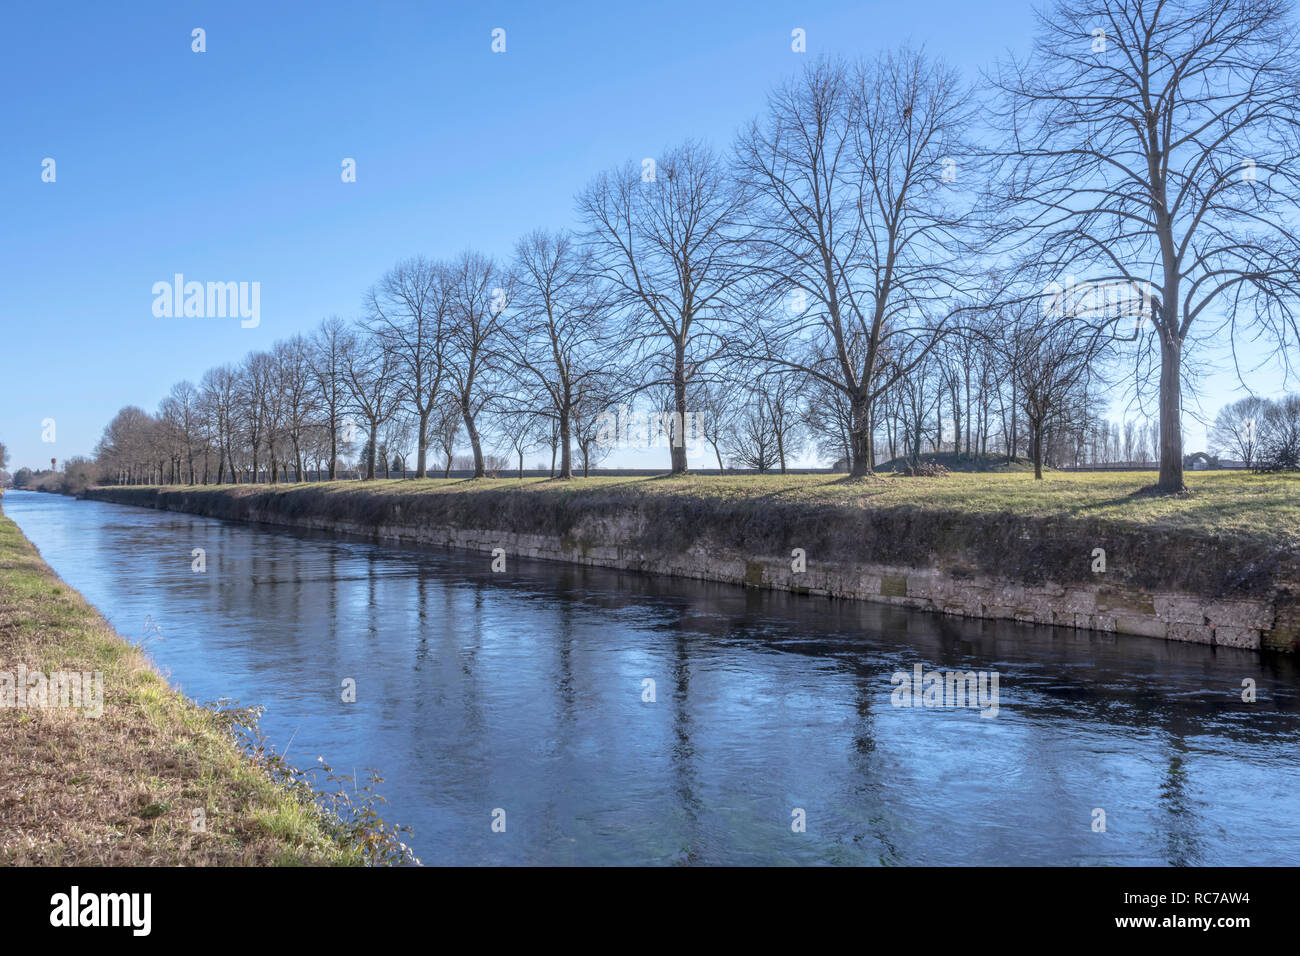 view of bare huge trees row on embankment of artificial historic canal, shot in winter bright light at Robecco sul Naviglio, Milan, Lombardy, Italy Stock Photo